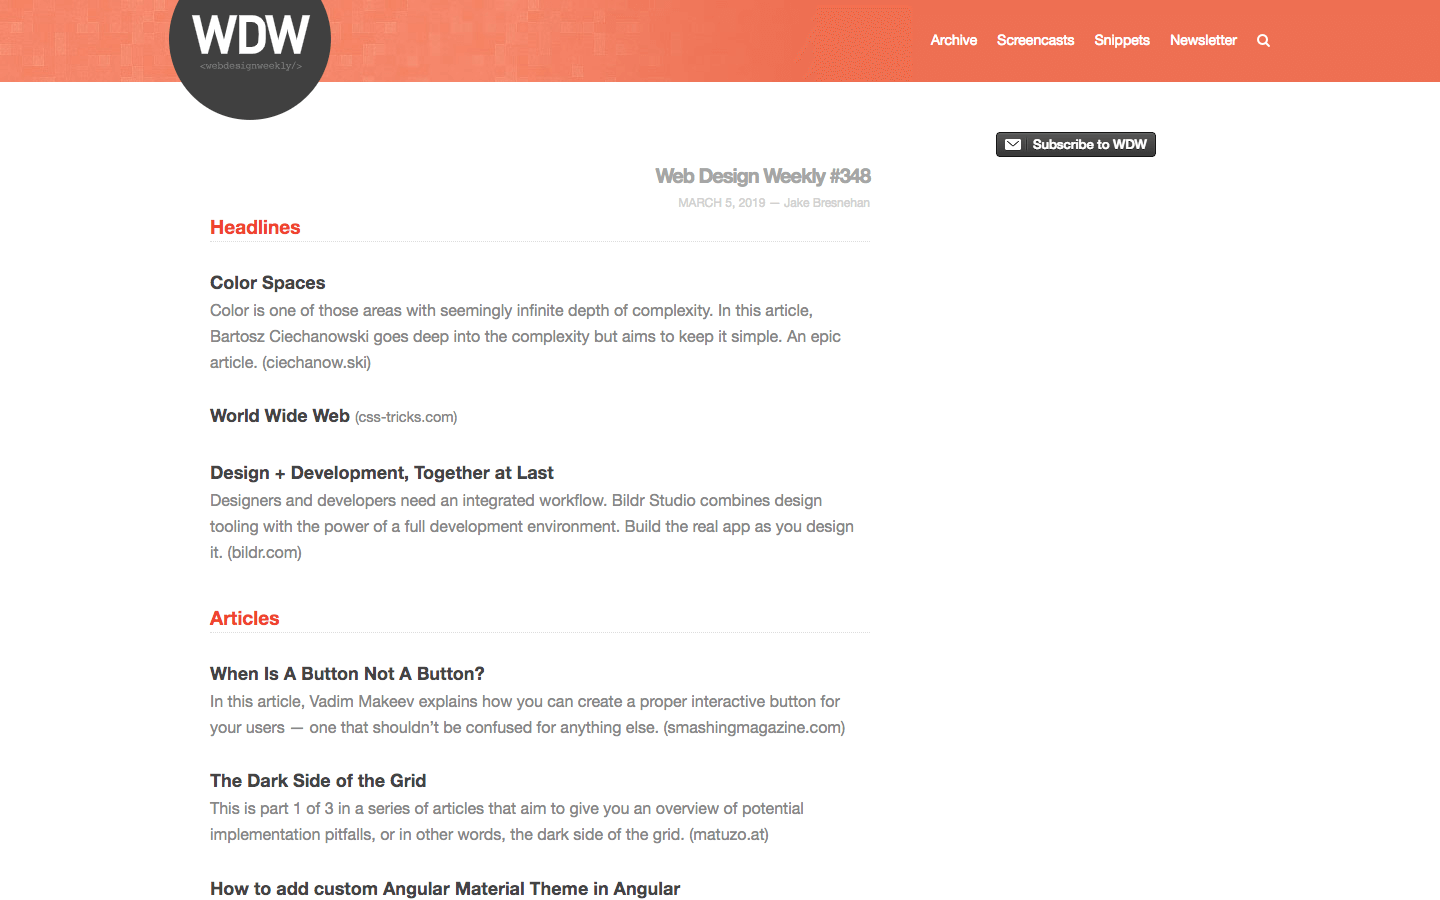 Web Design Weekly homepage